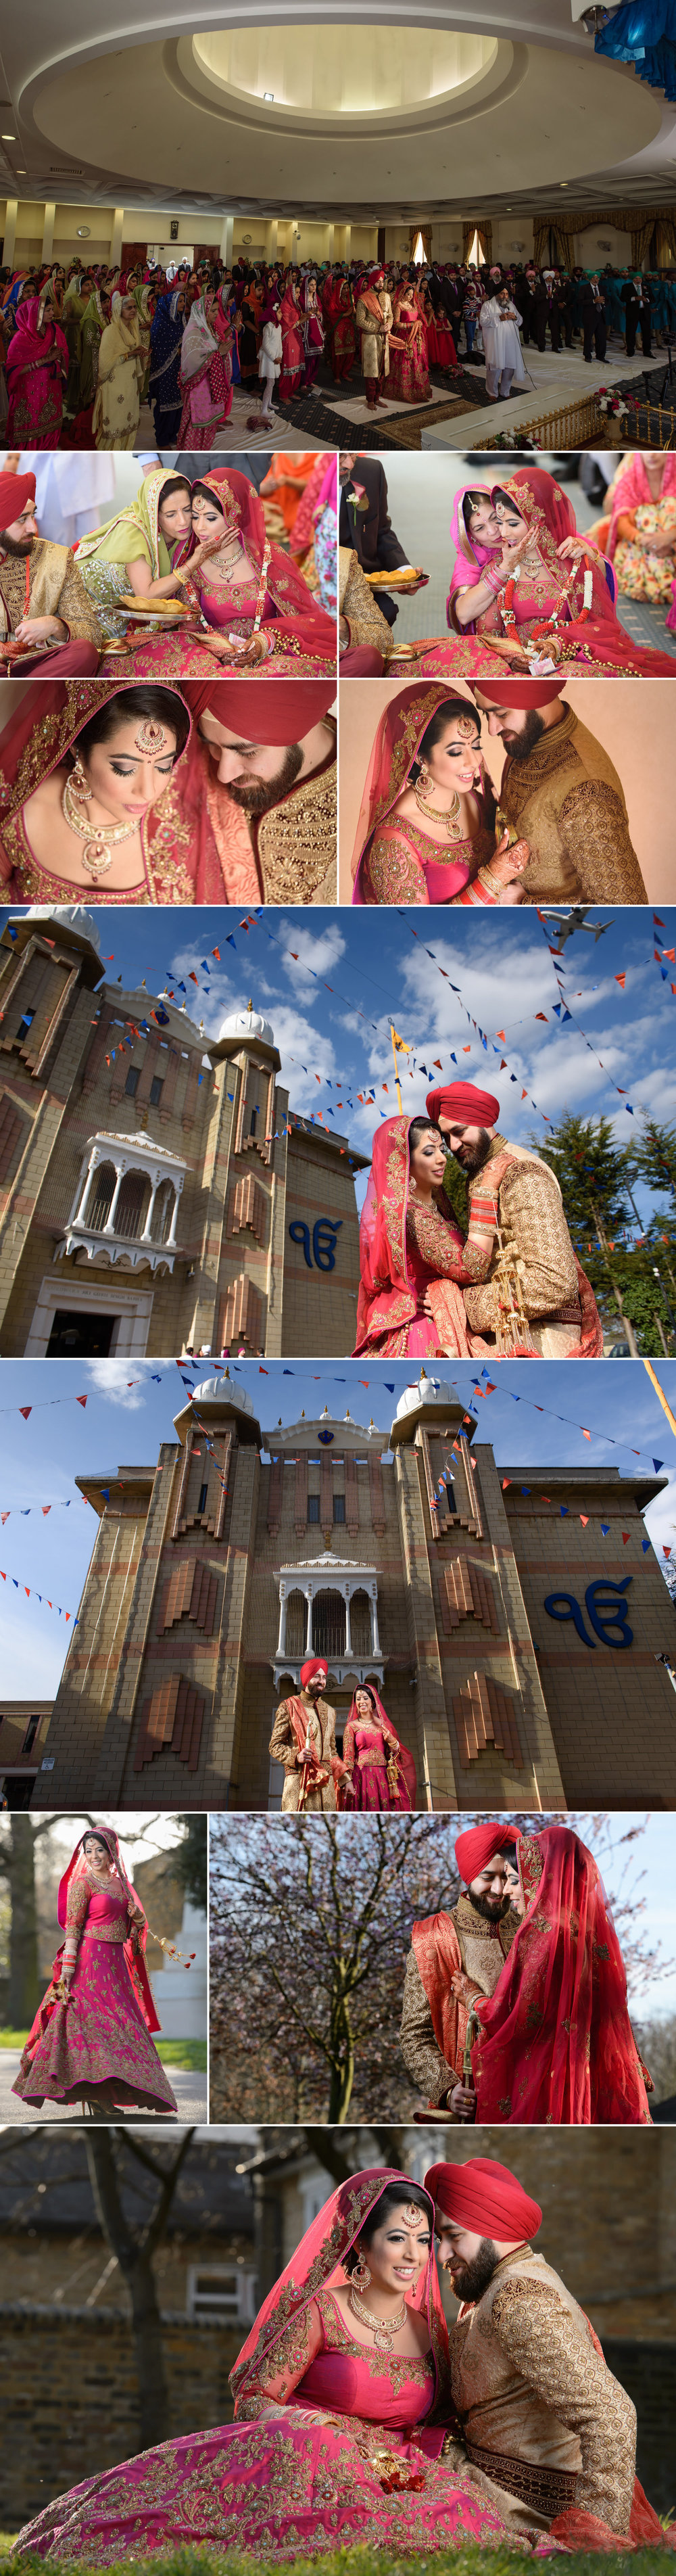 satnam photography sikh wedding ceremony alice way gurdwara london hounslow wedding photography-6